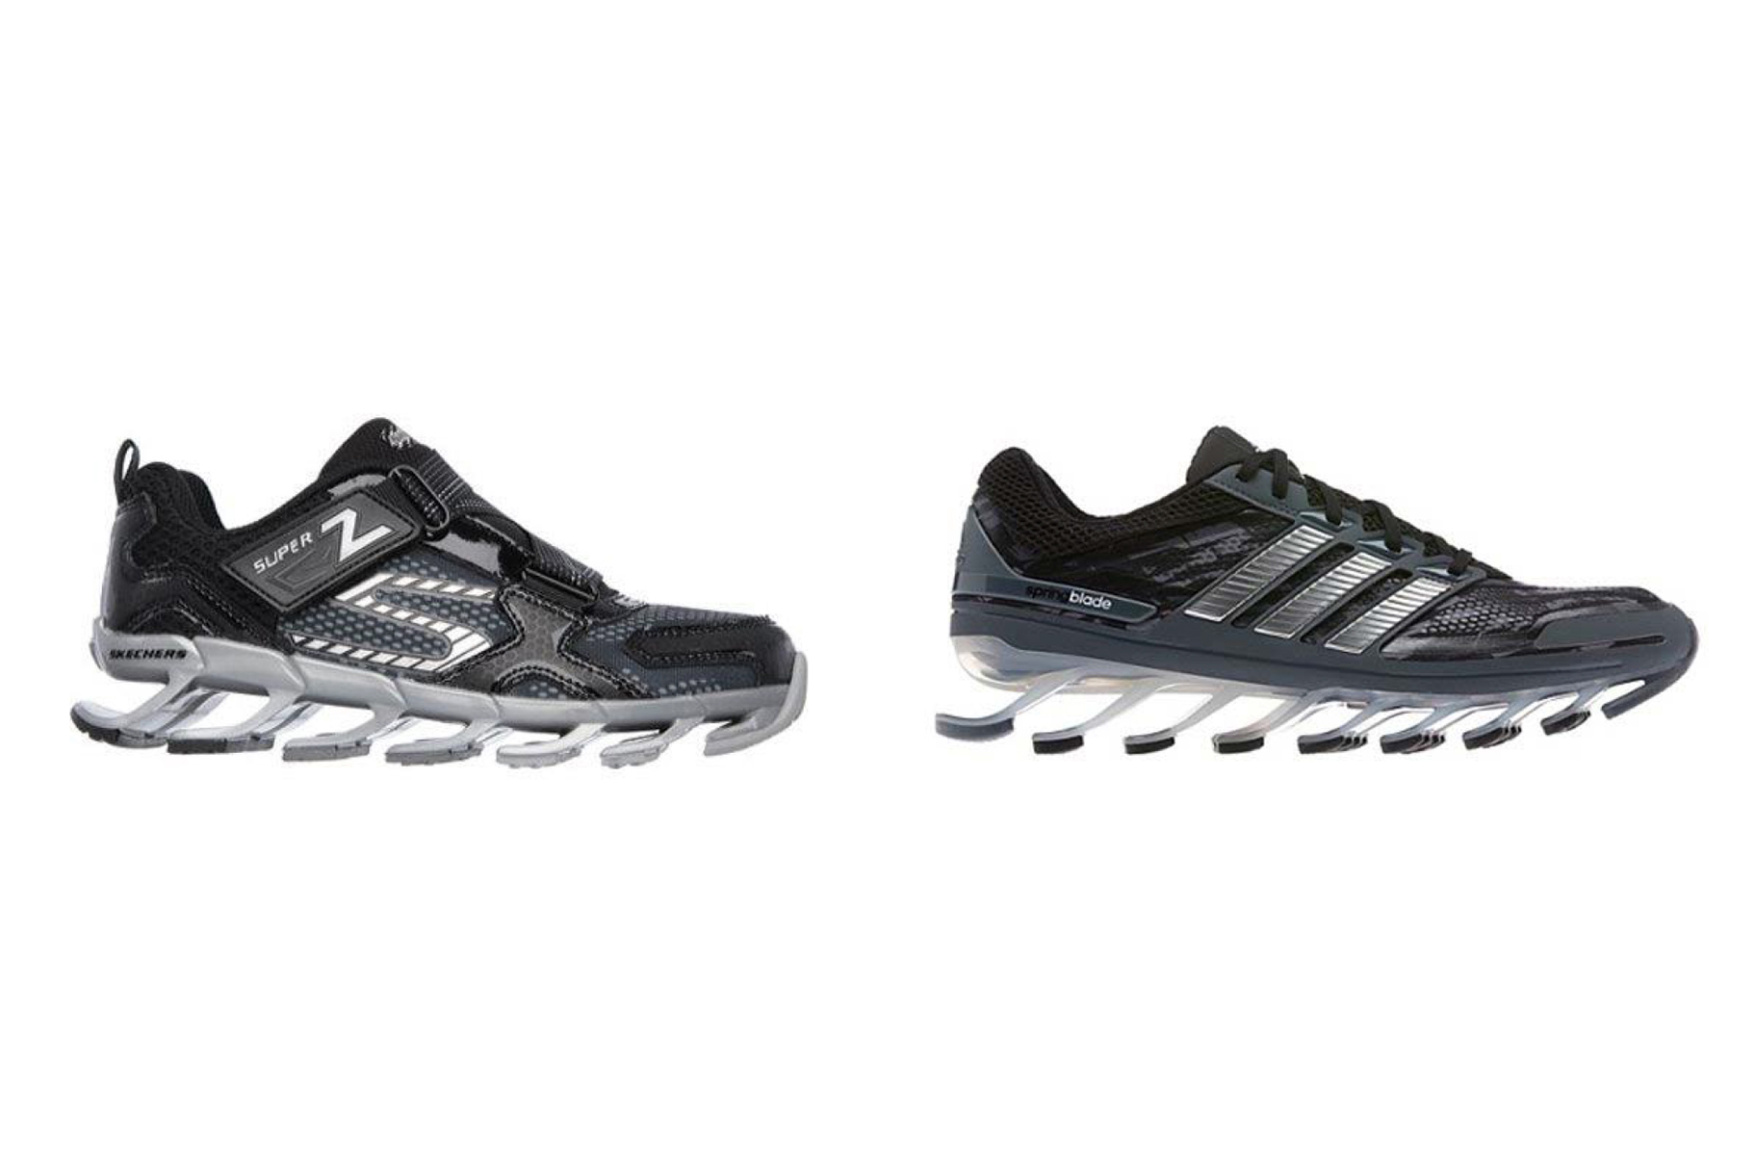 adidas-sues-skechers-in-patent-lawsuit-01